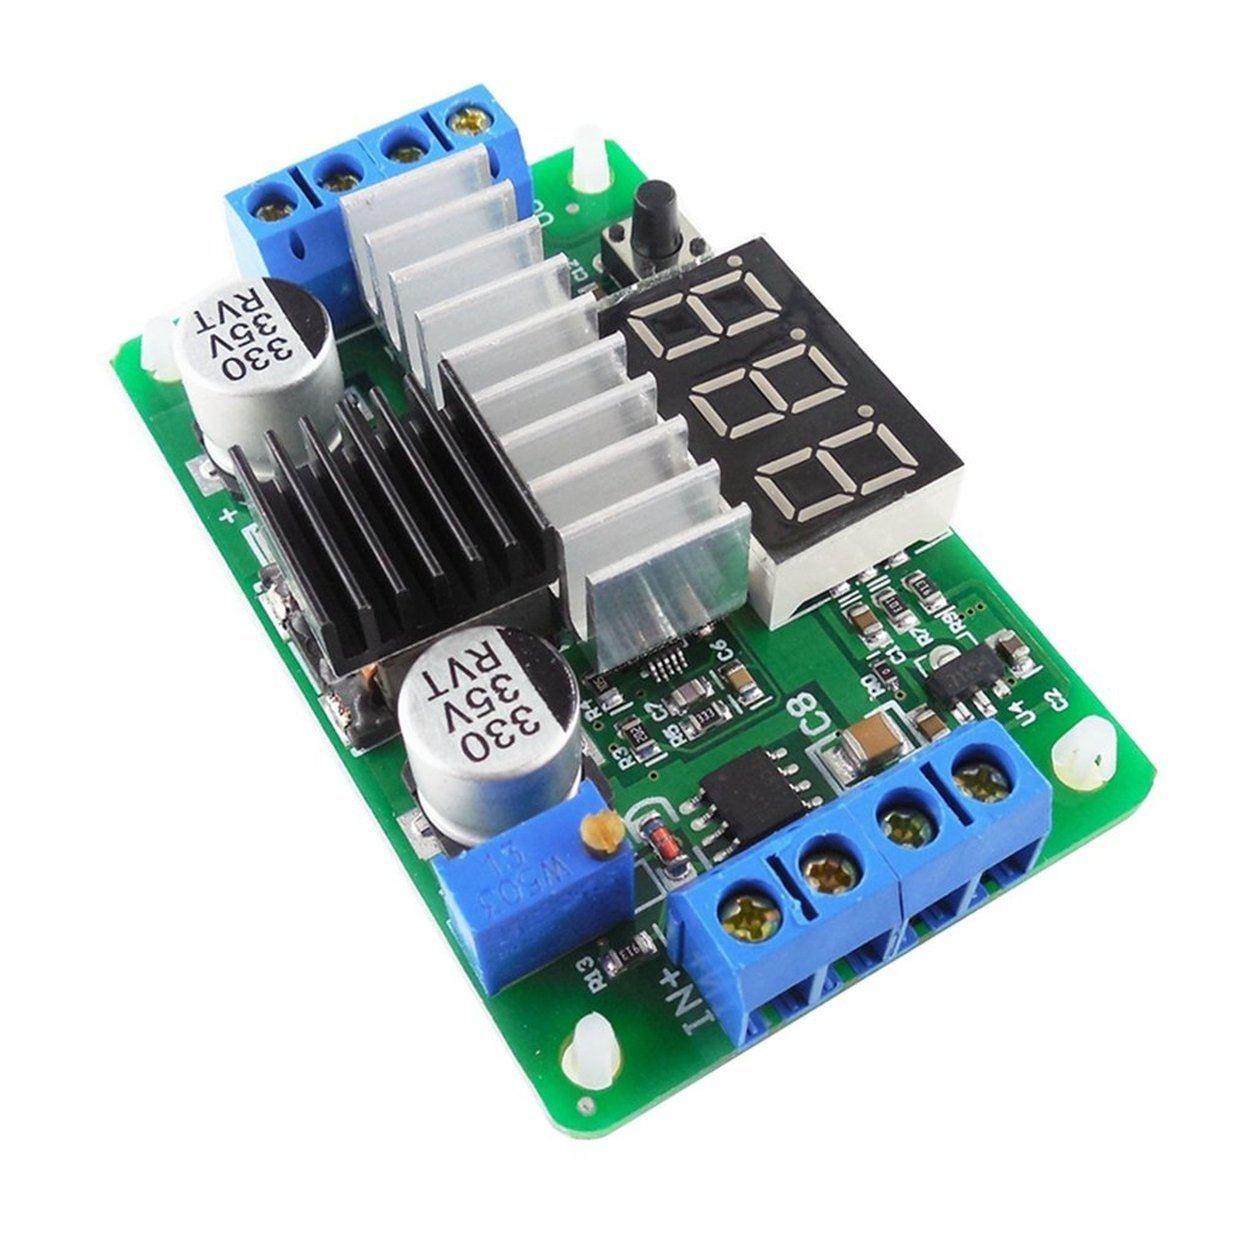 Buy Generic Or Ltc1871 Dc Step Up Booster Converter 35 30vdc Led 100w Boost Power Module Image